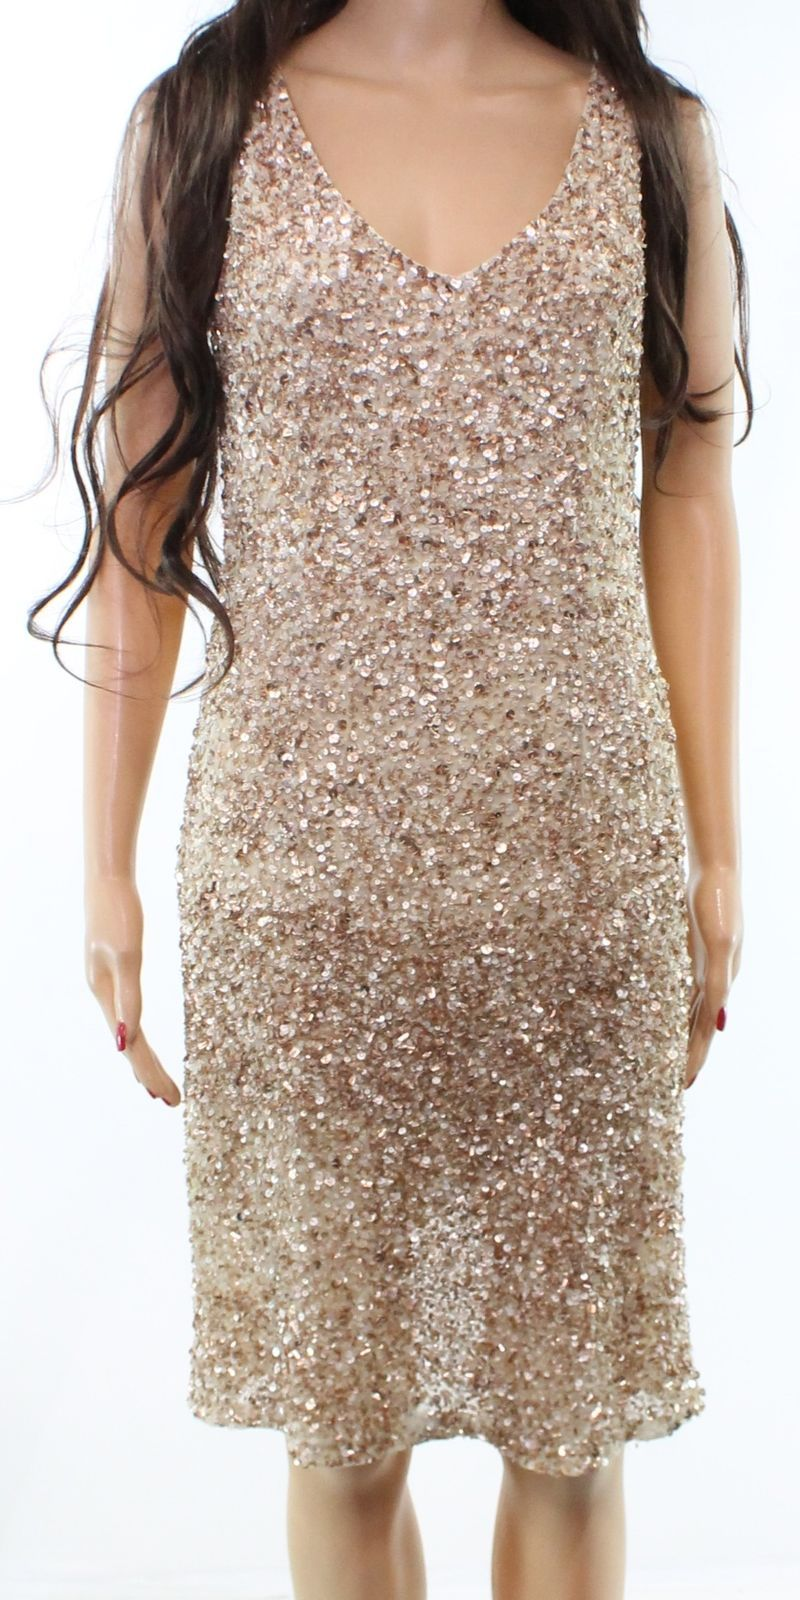 205ef6f477 Details about Theia Champagne Gold Women s Size 4 V-Neck Sequin Sheath Dress   750-  271